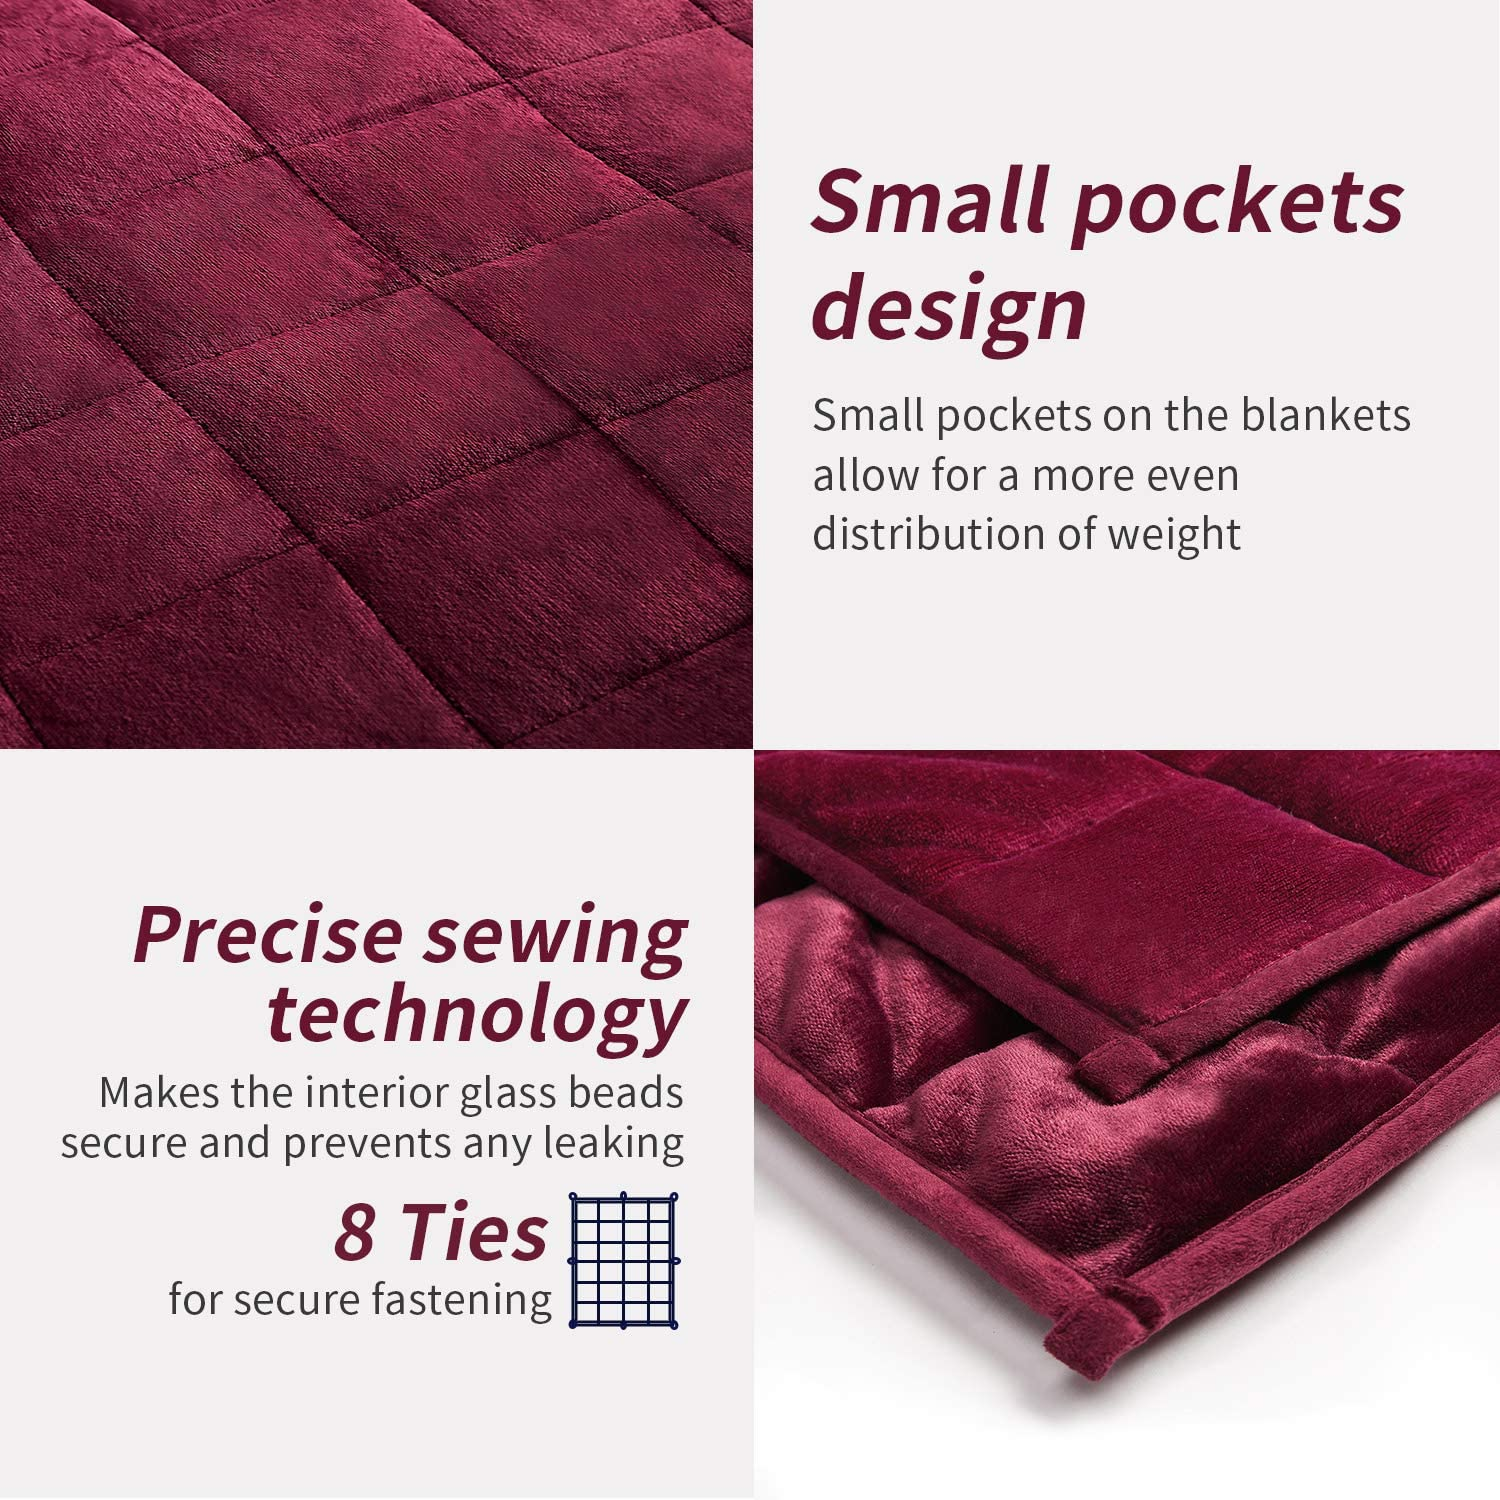 NEWSHONE Removable Cover for Weighted Blanket Fuzzy Soft Flannel Fleece Material Burgundy;Duvet Cover Only Single Size 41x60